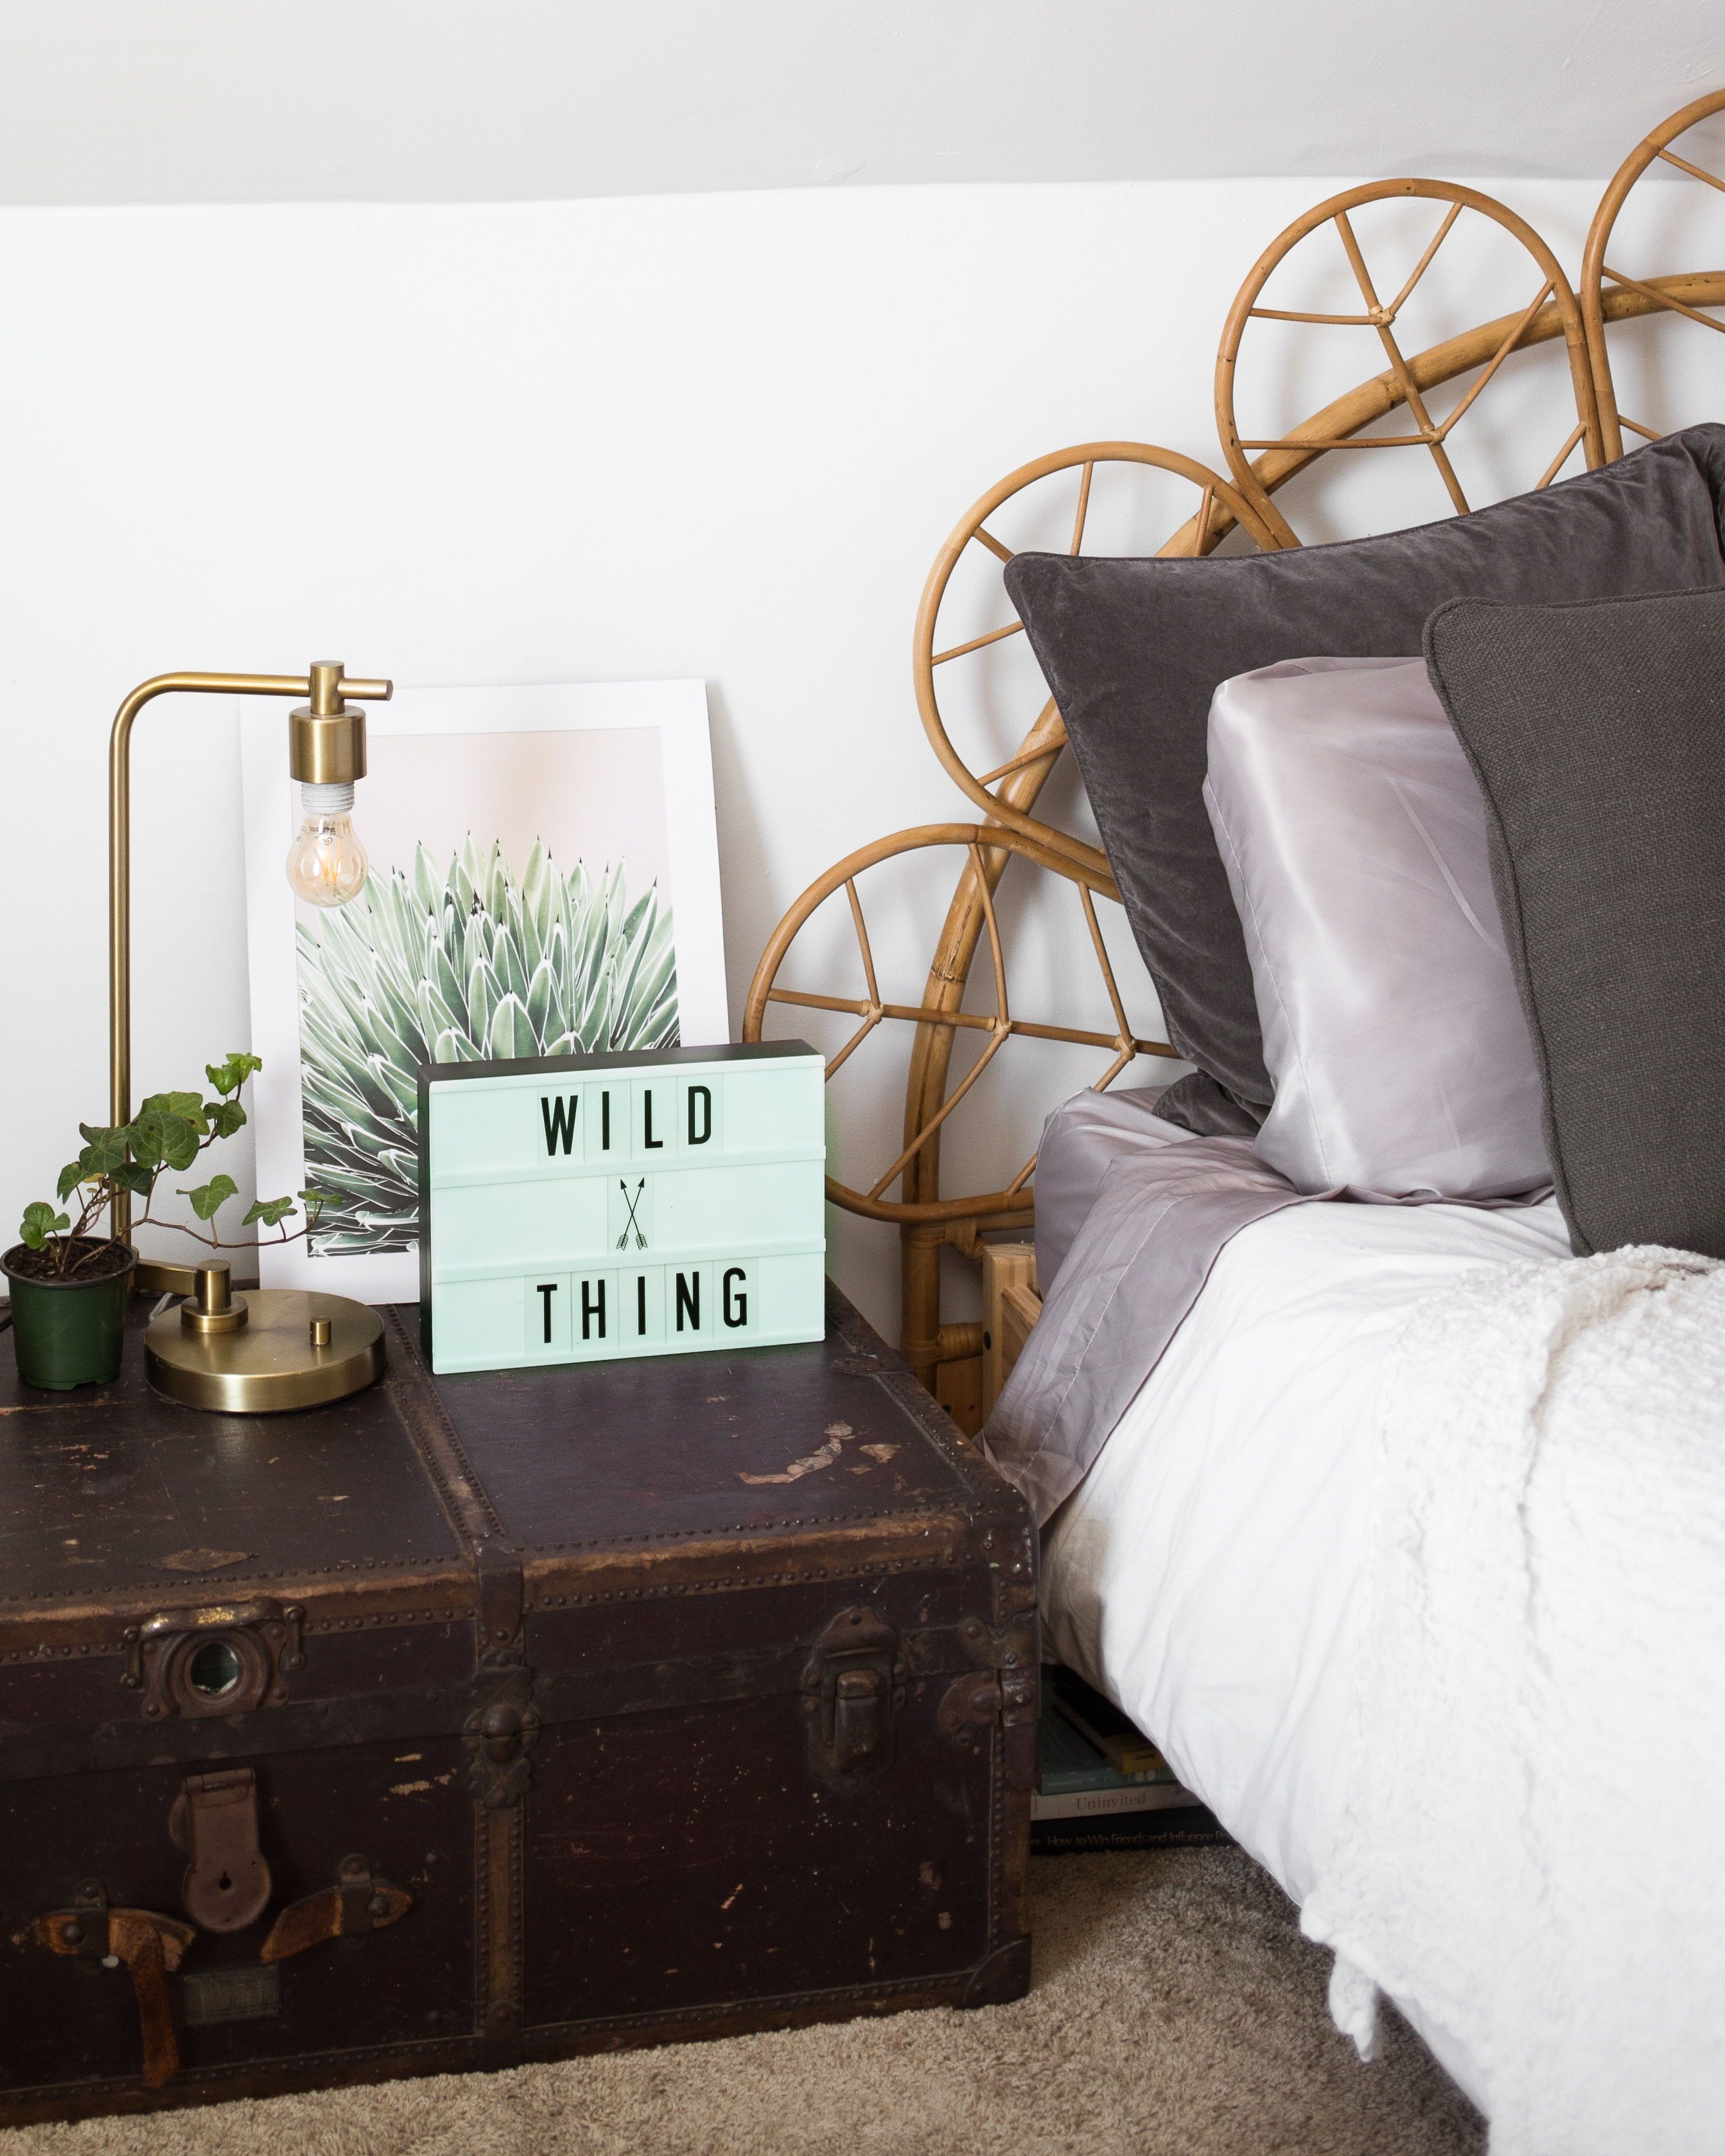 Bring out your inner wild thing. #lightbox #boho #bohostyle